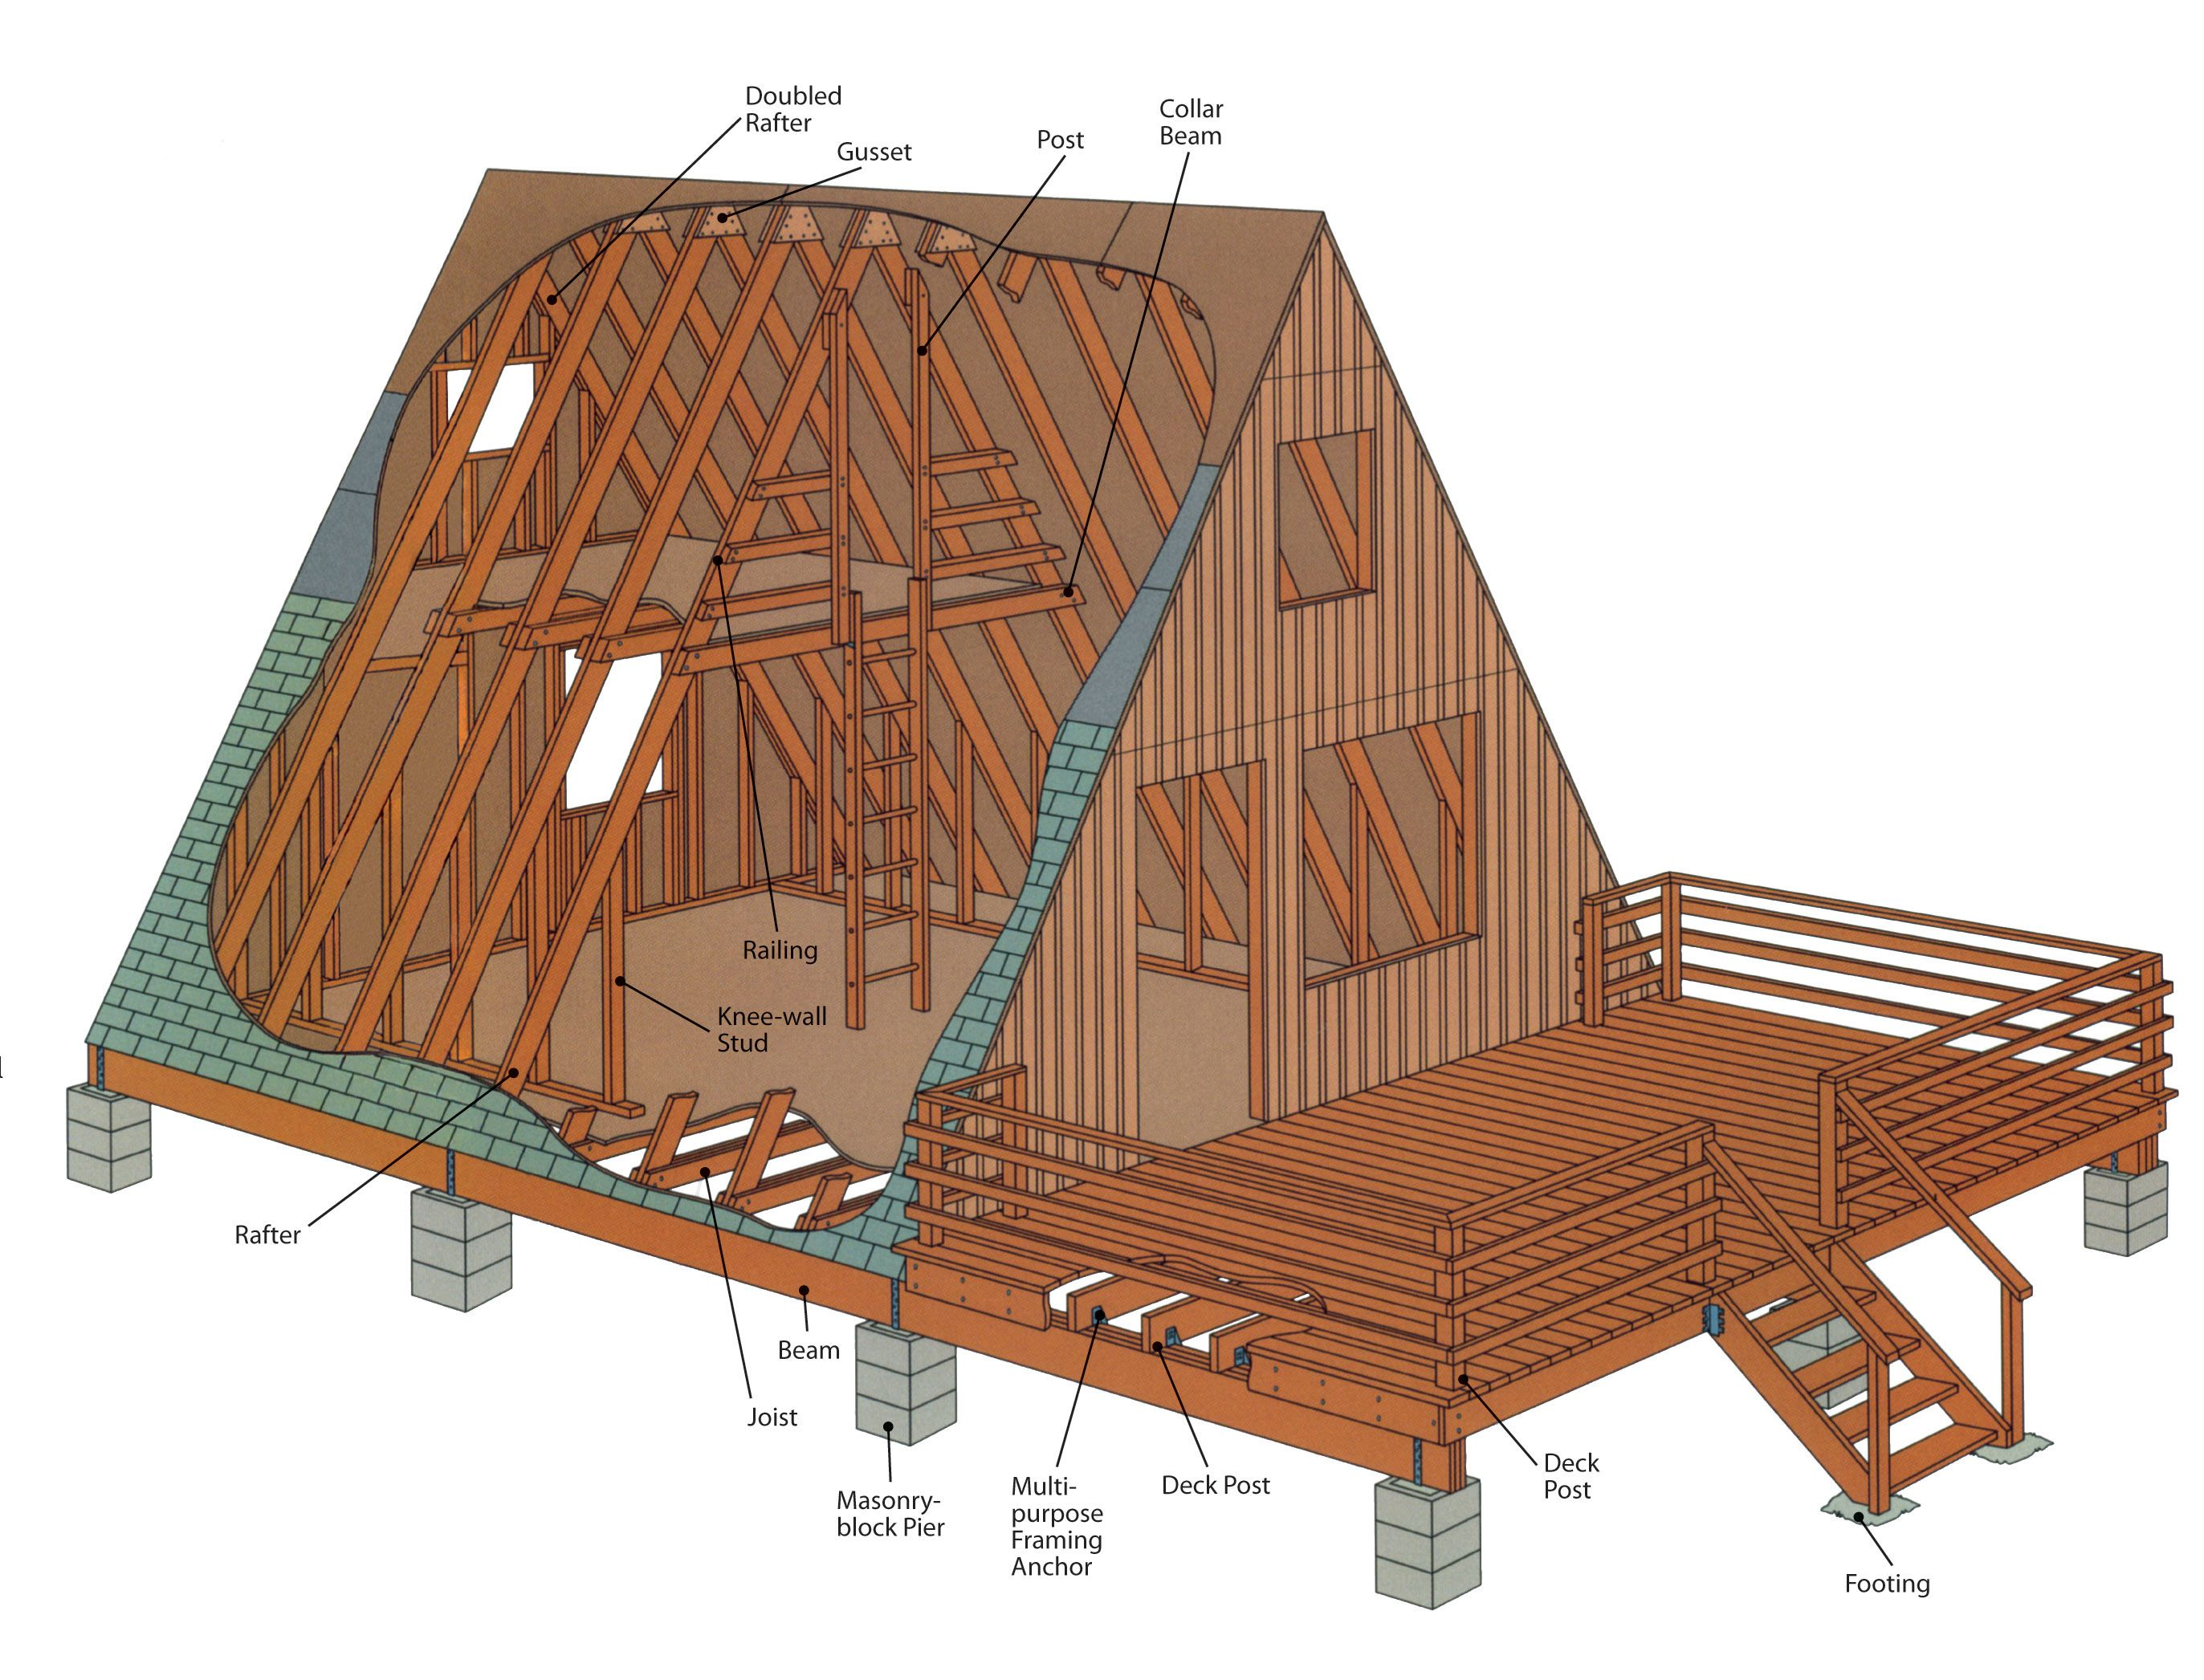 How To Build An A Frame A Frame House Plans A Frame House A Frame Cabin Plans